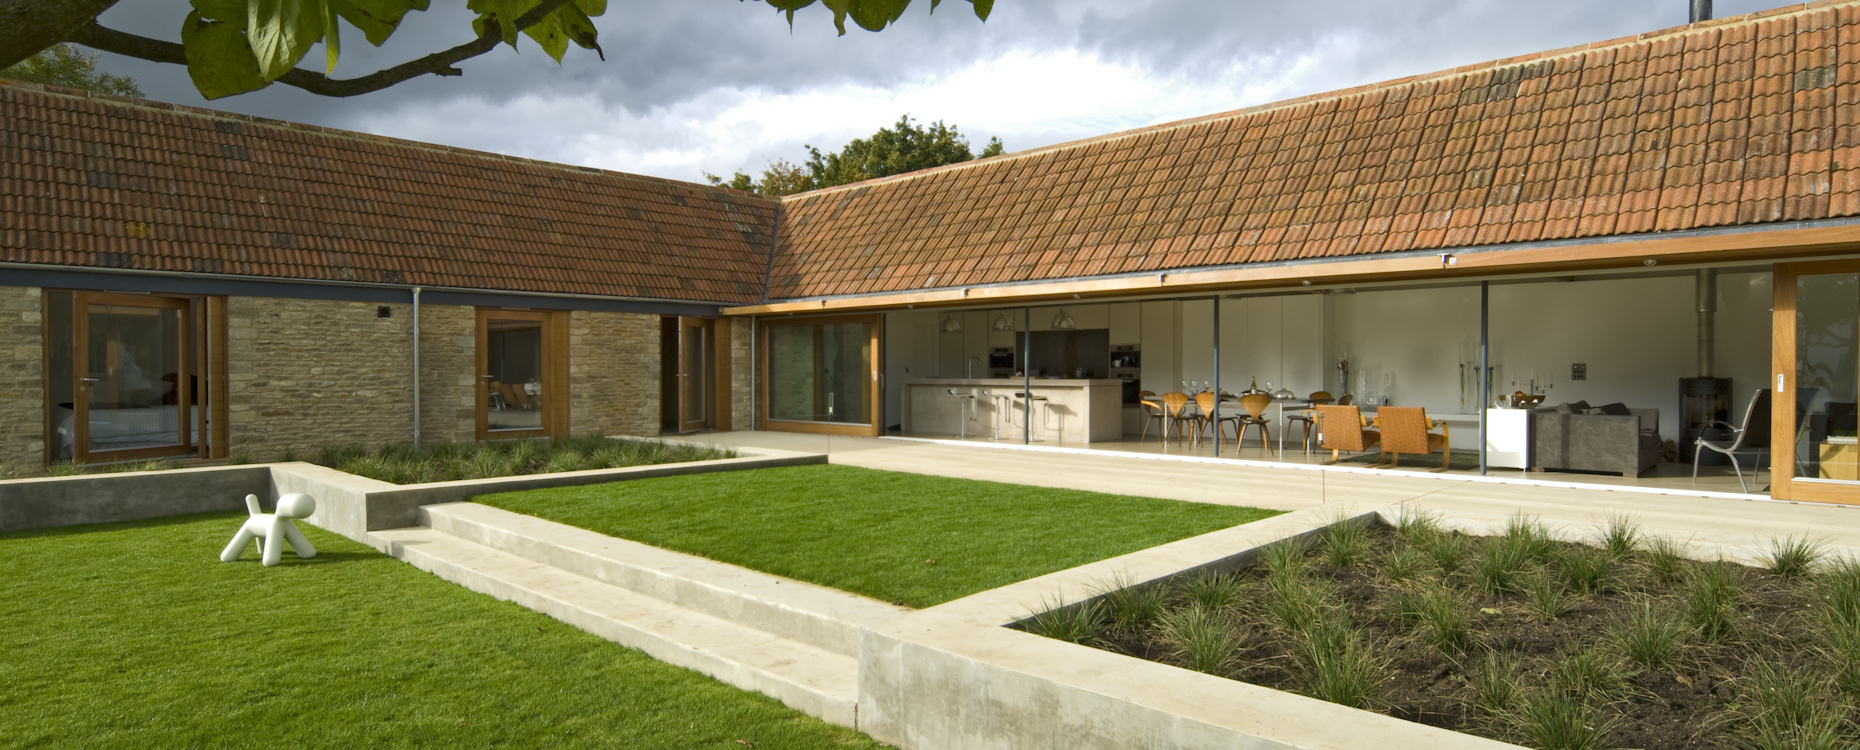 CaSA-Little Chalfield-Wiltshire-concrete landscaping-03-BAN.jpg